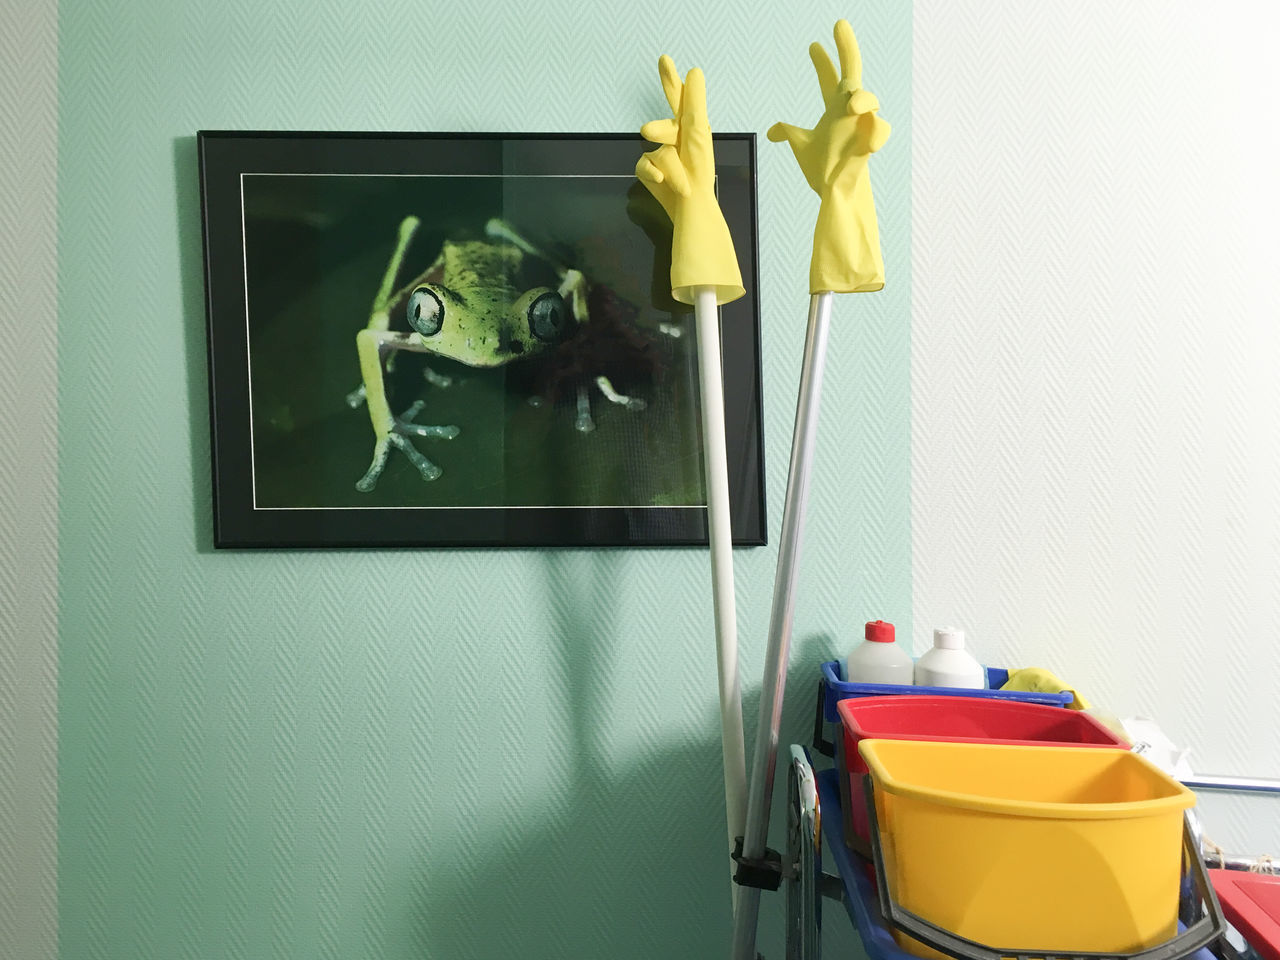 cleaning personnel left their supply :) Cleaning Service Corridor Frog Hospital Picture Rubber Gloves Still Life Trolley